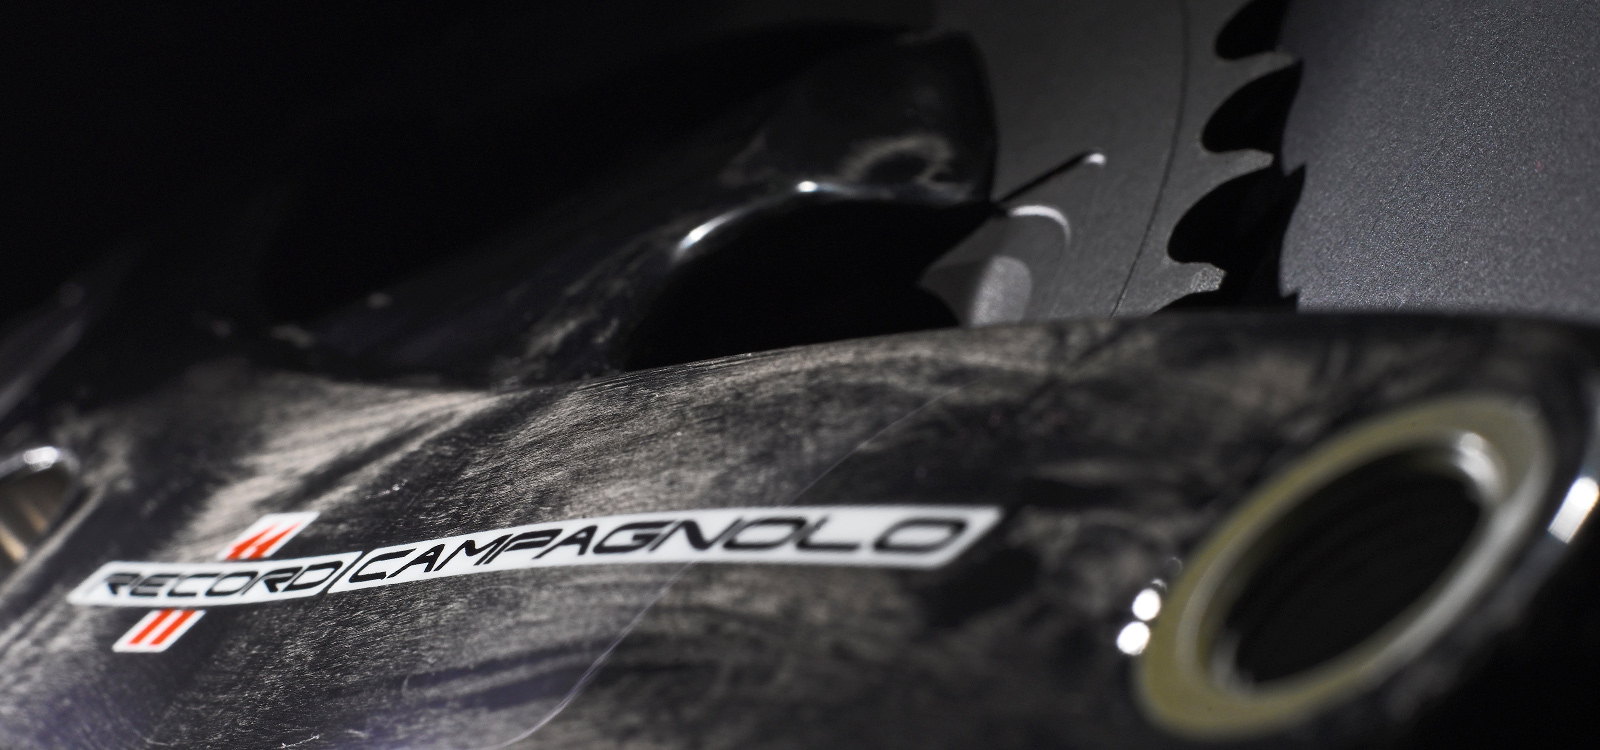 road bicycle Campagnolo groupset  Record 2015